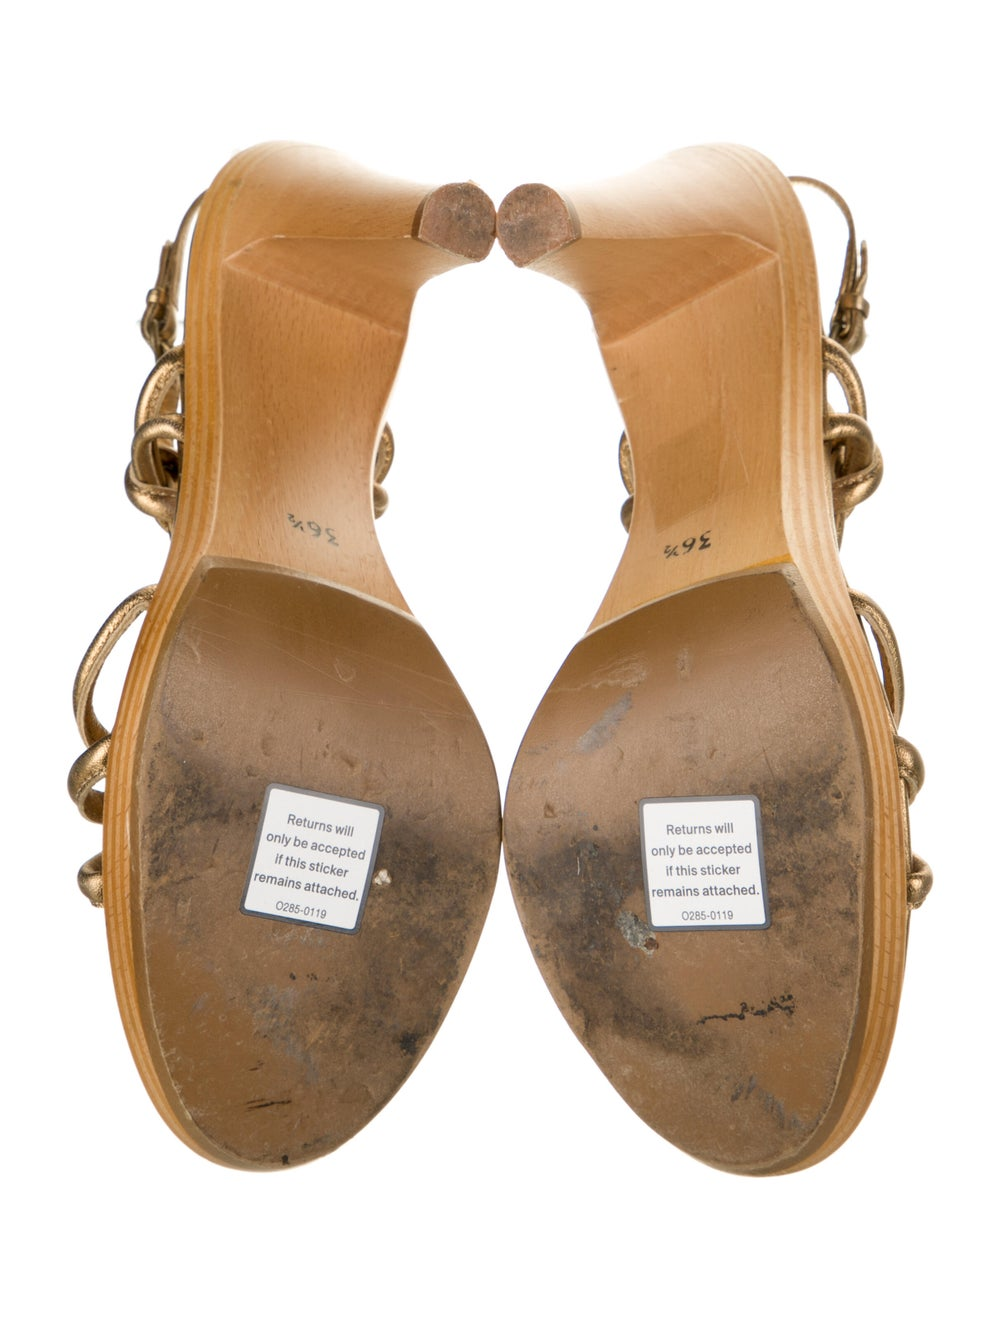 Moschino Cheap and Chic Leather Slingback Sandals - image 5